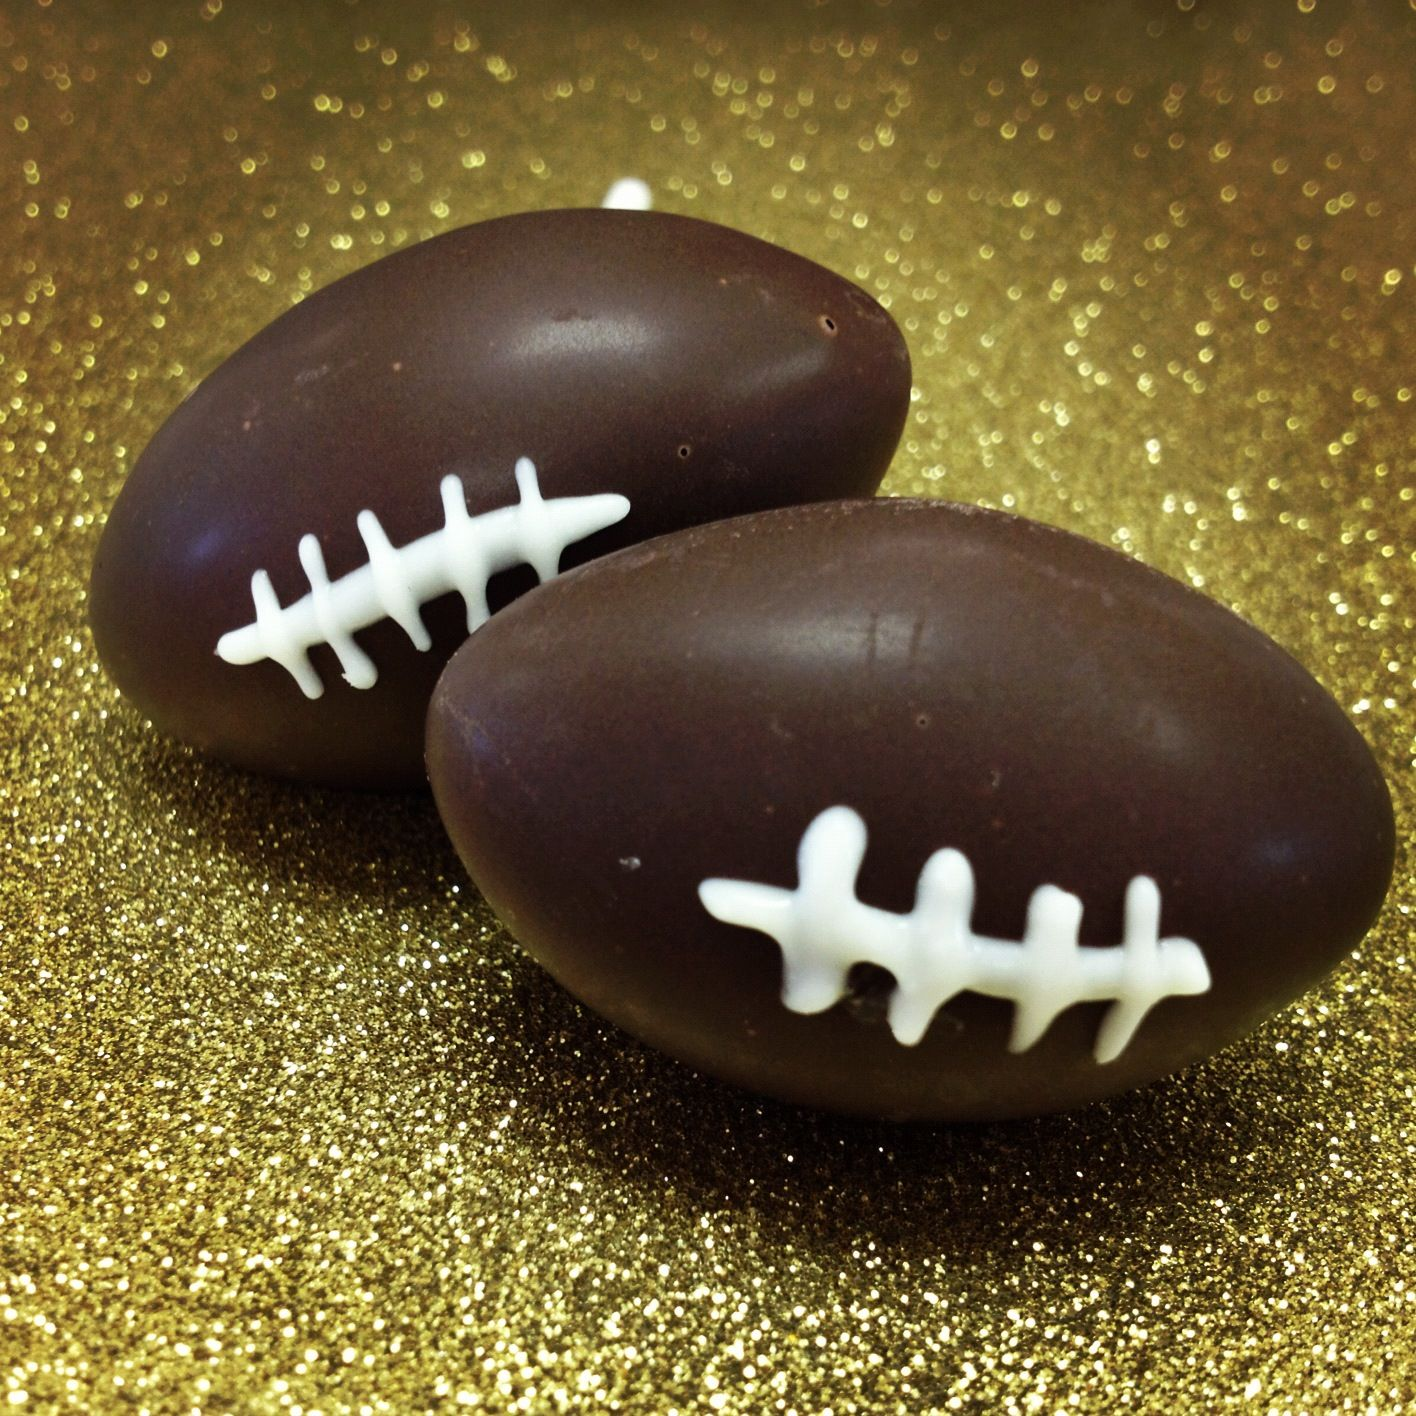 Football cake pops live in the new orleans area and want